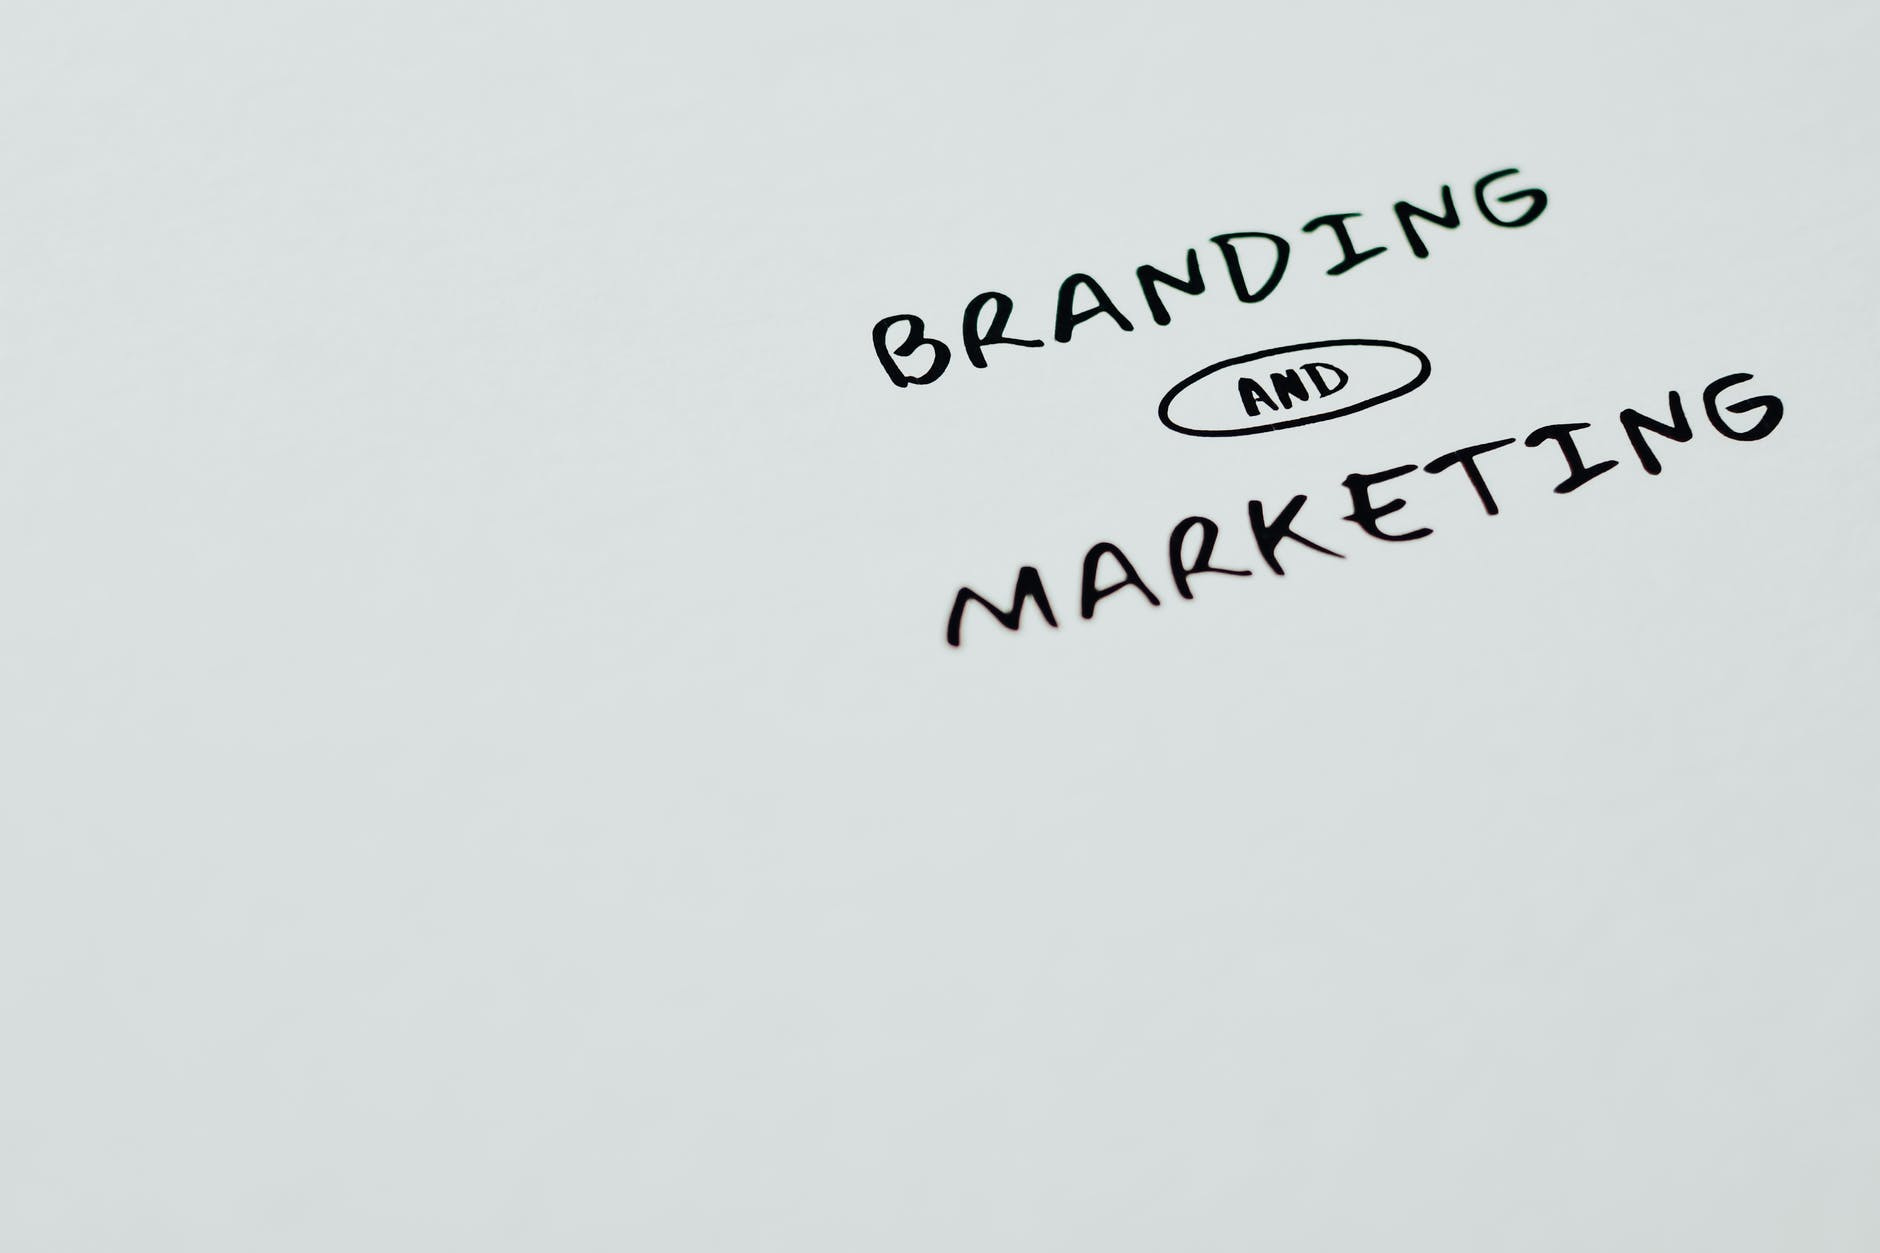 Branding And Marketing Text On A White Surface